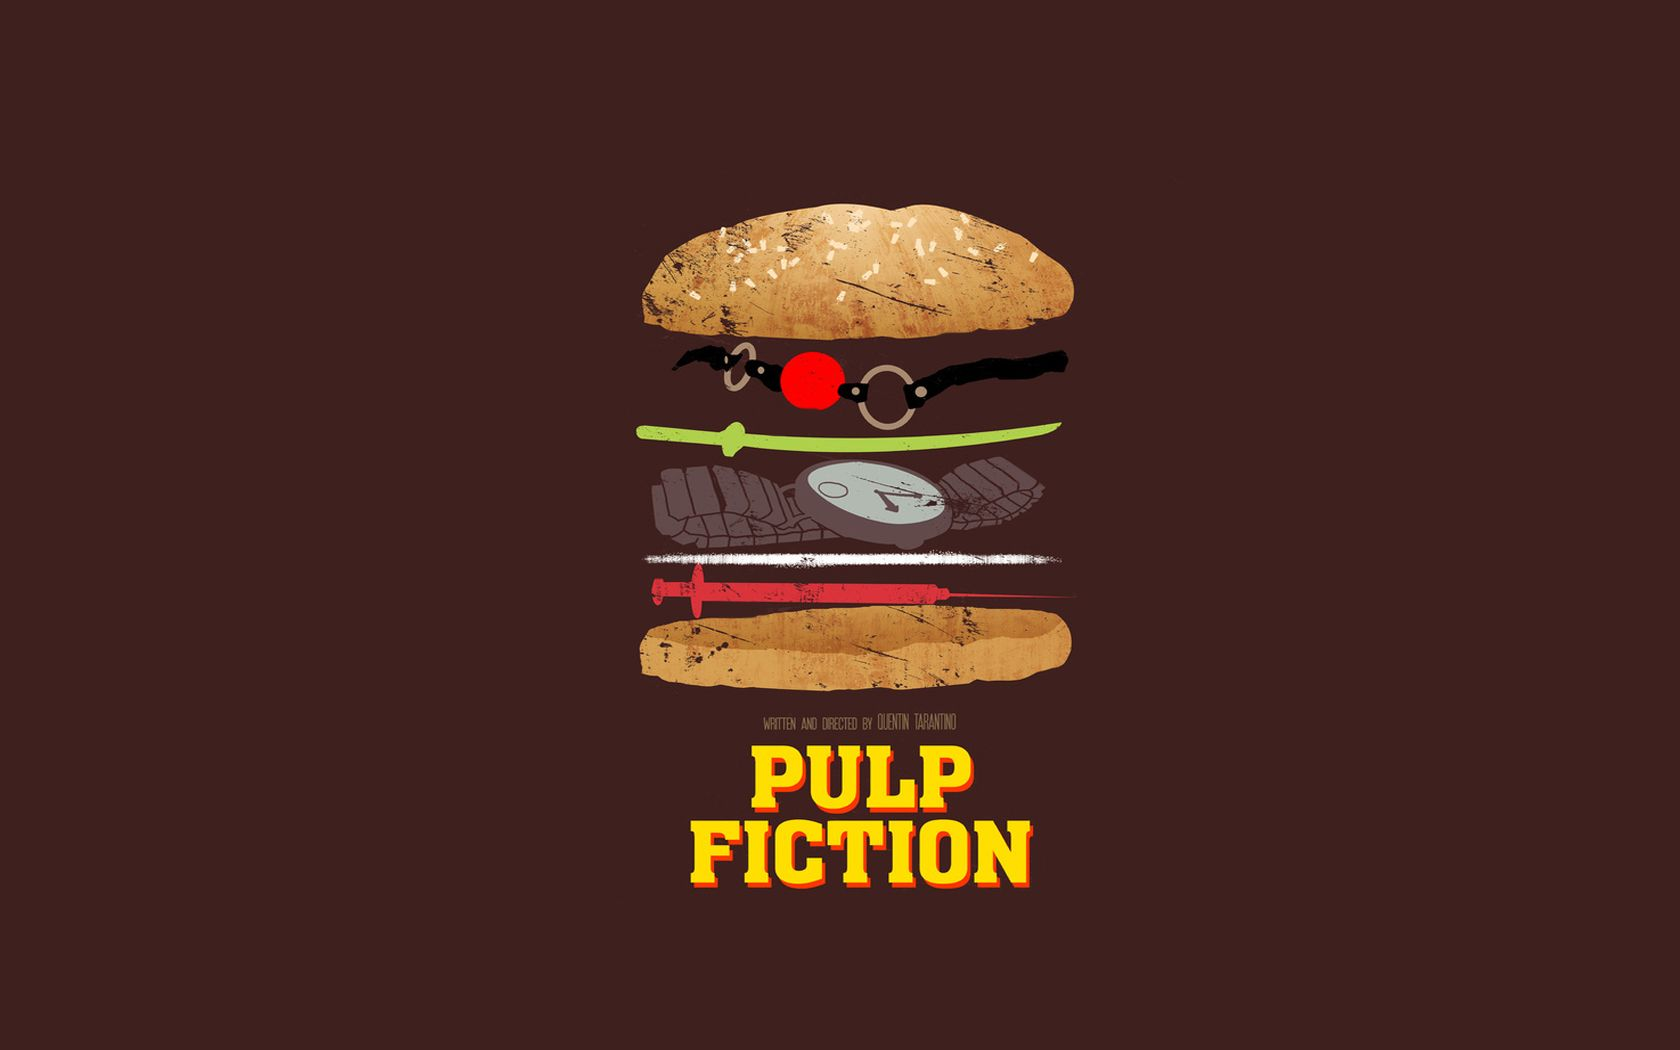 Bible Verse And Image Pulp Fiction Wallpaper: Pulp Fiction Wallpapers